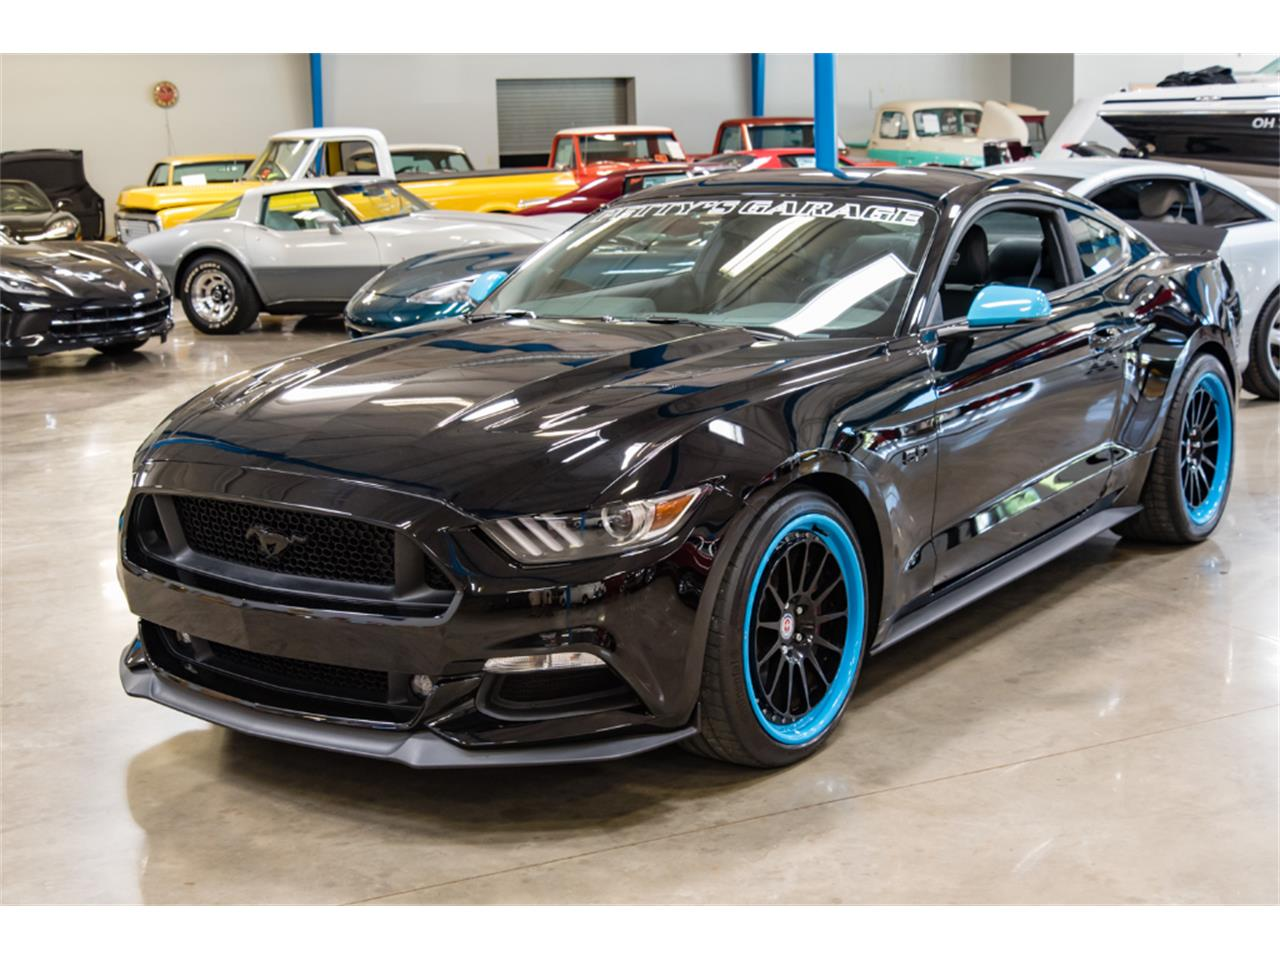 2015 Mustang Gt Pictures For Sale 2015 Ford Mustang Gt In Salem Ohio